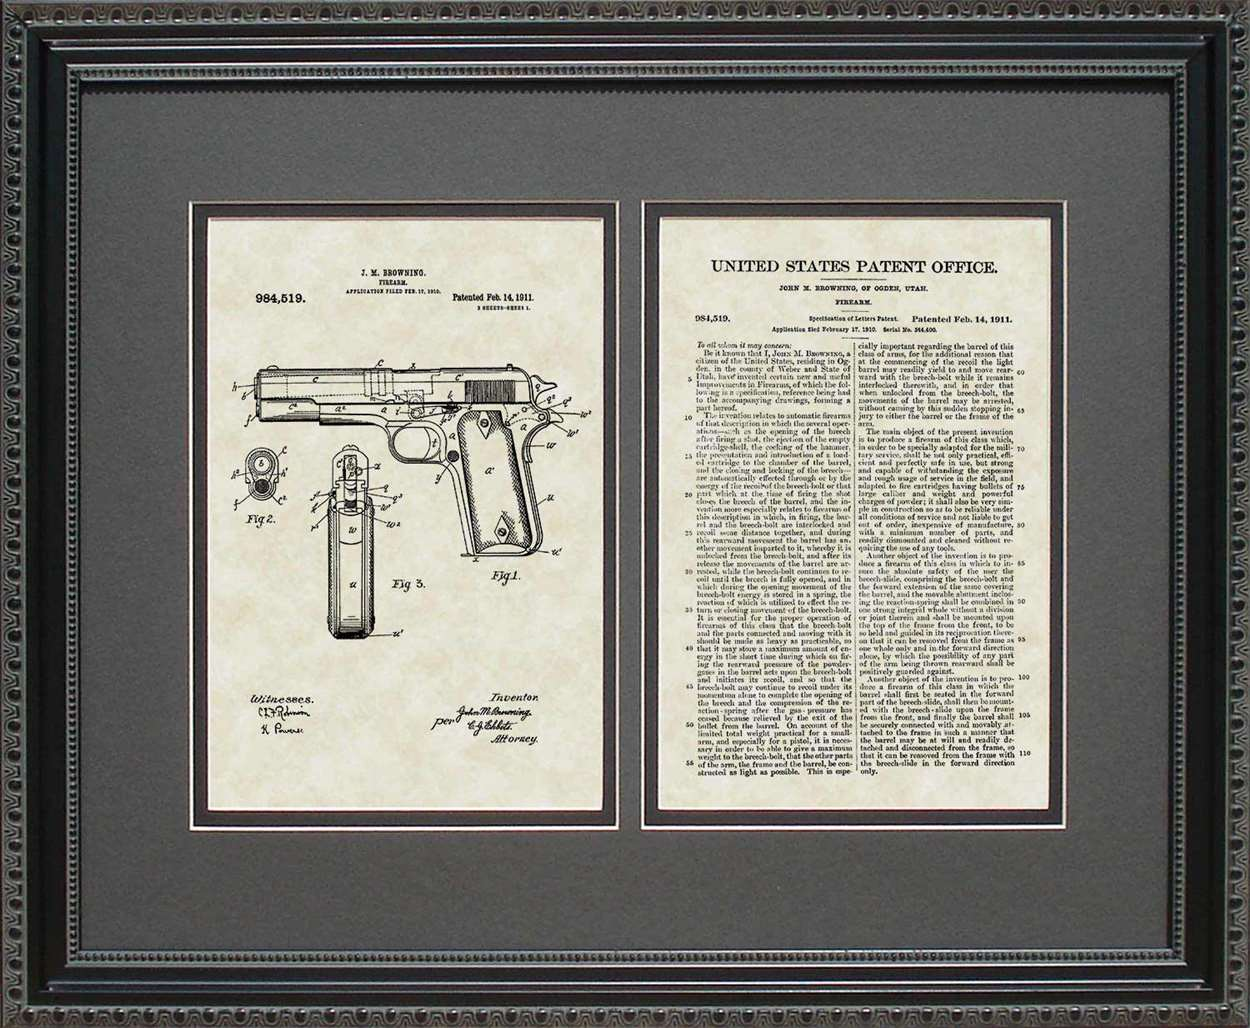 Colt 45 Pistol Patent, Art & Copy, Browning, 1911, 16x20